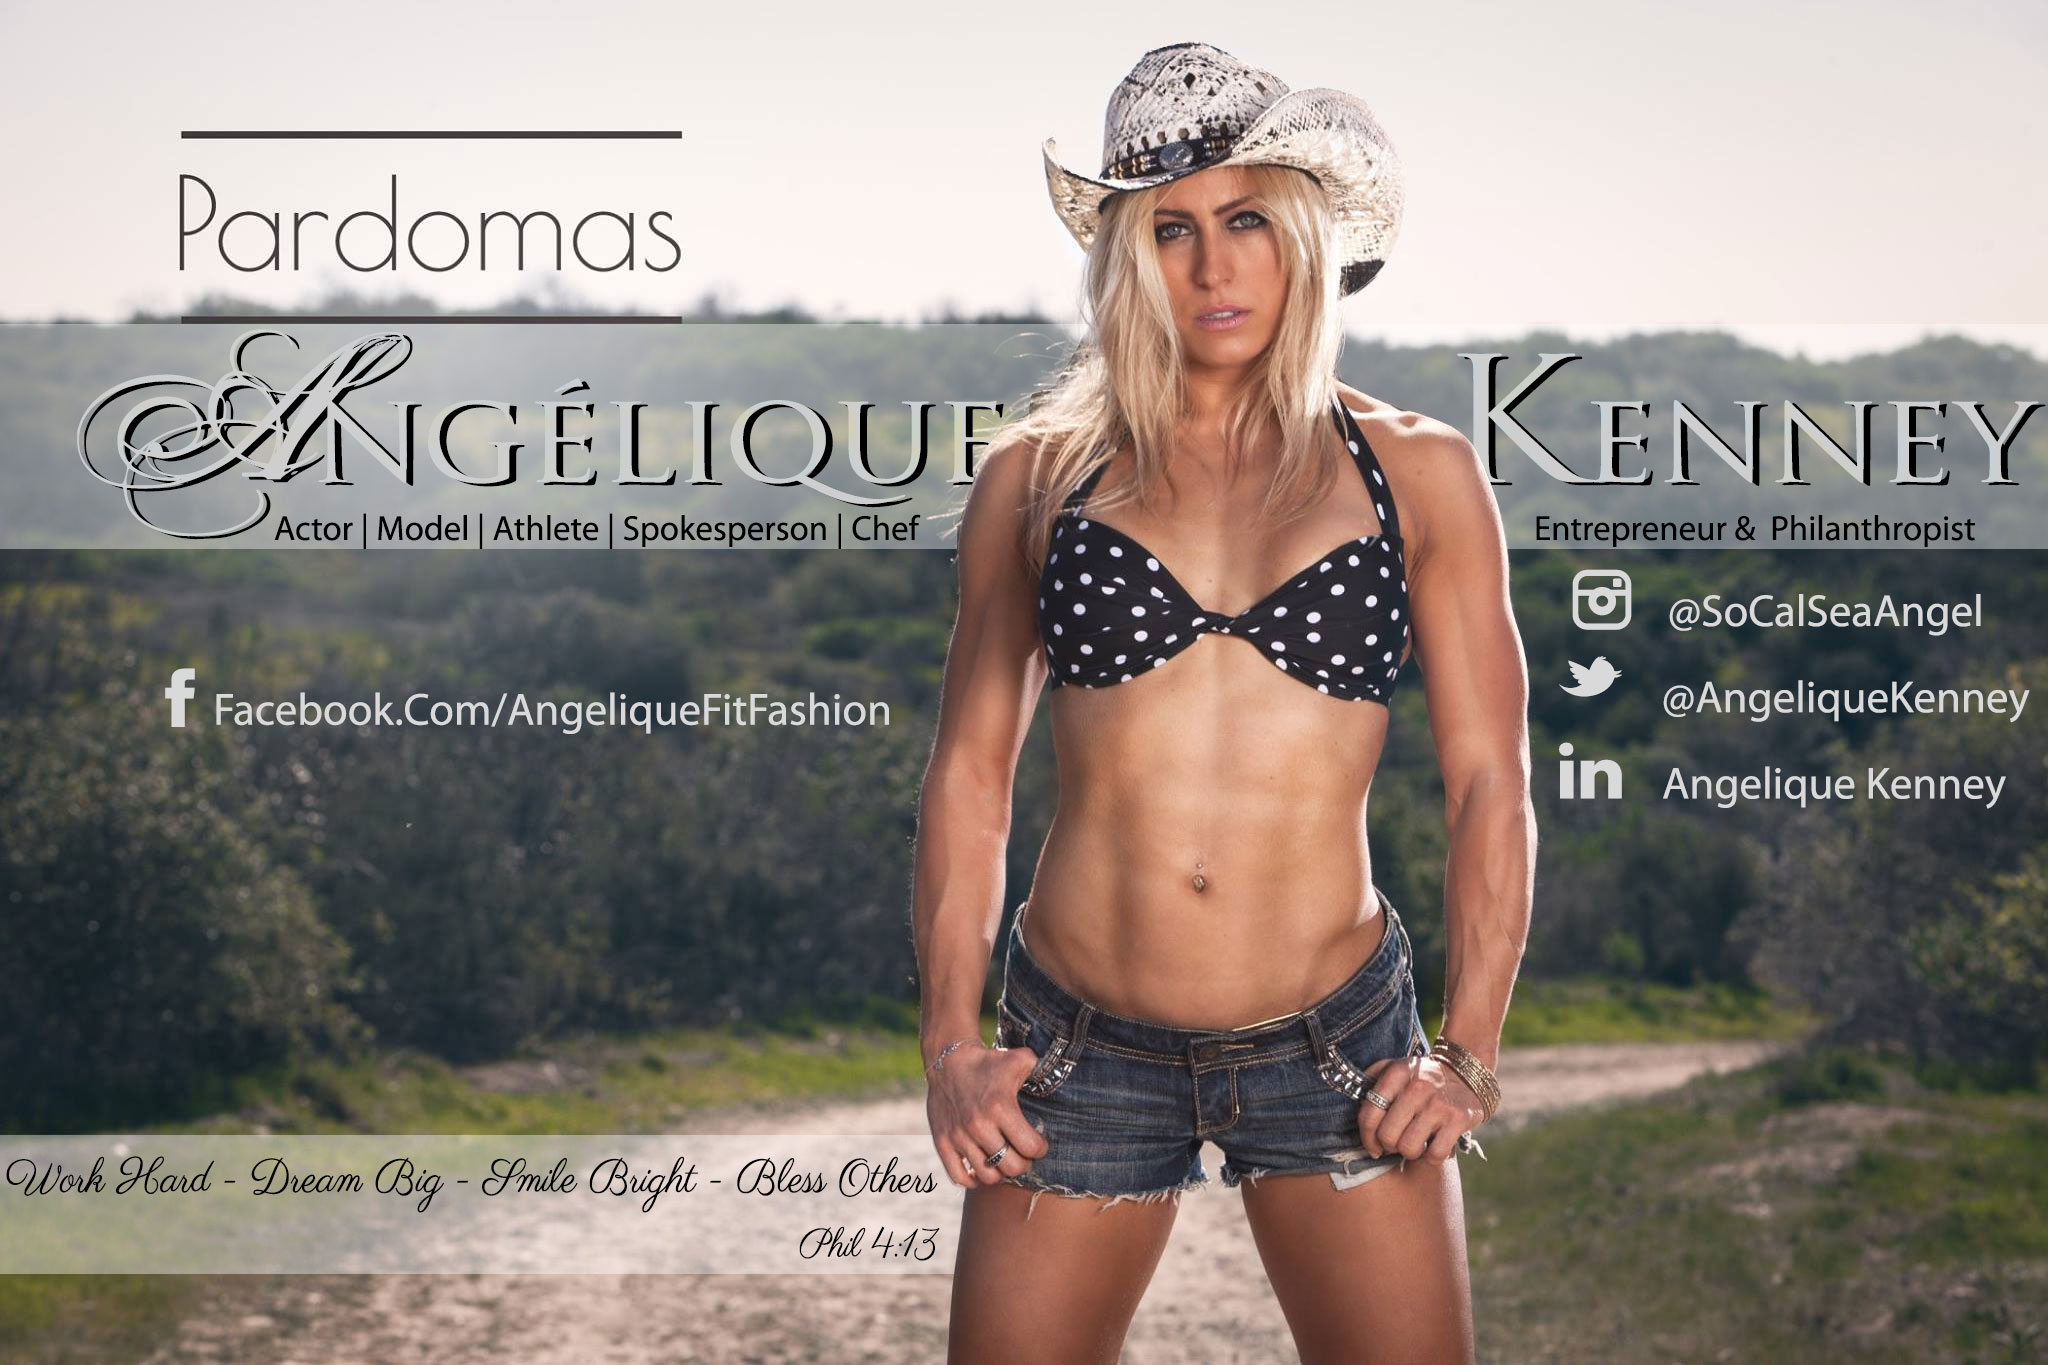 Angelique-Finale-WEB-Banner---The-Pardomas-shoot-Kyle-Fitness.jpg